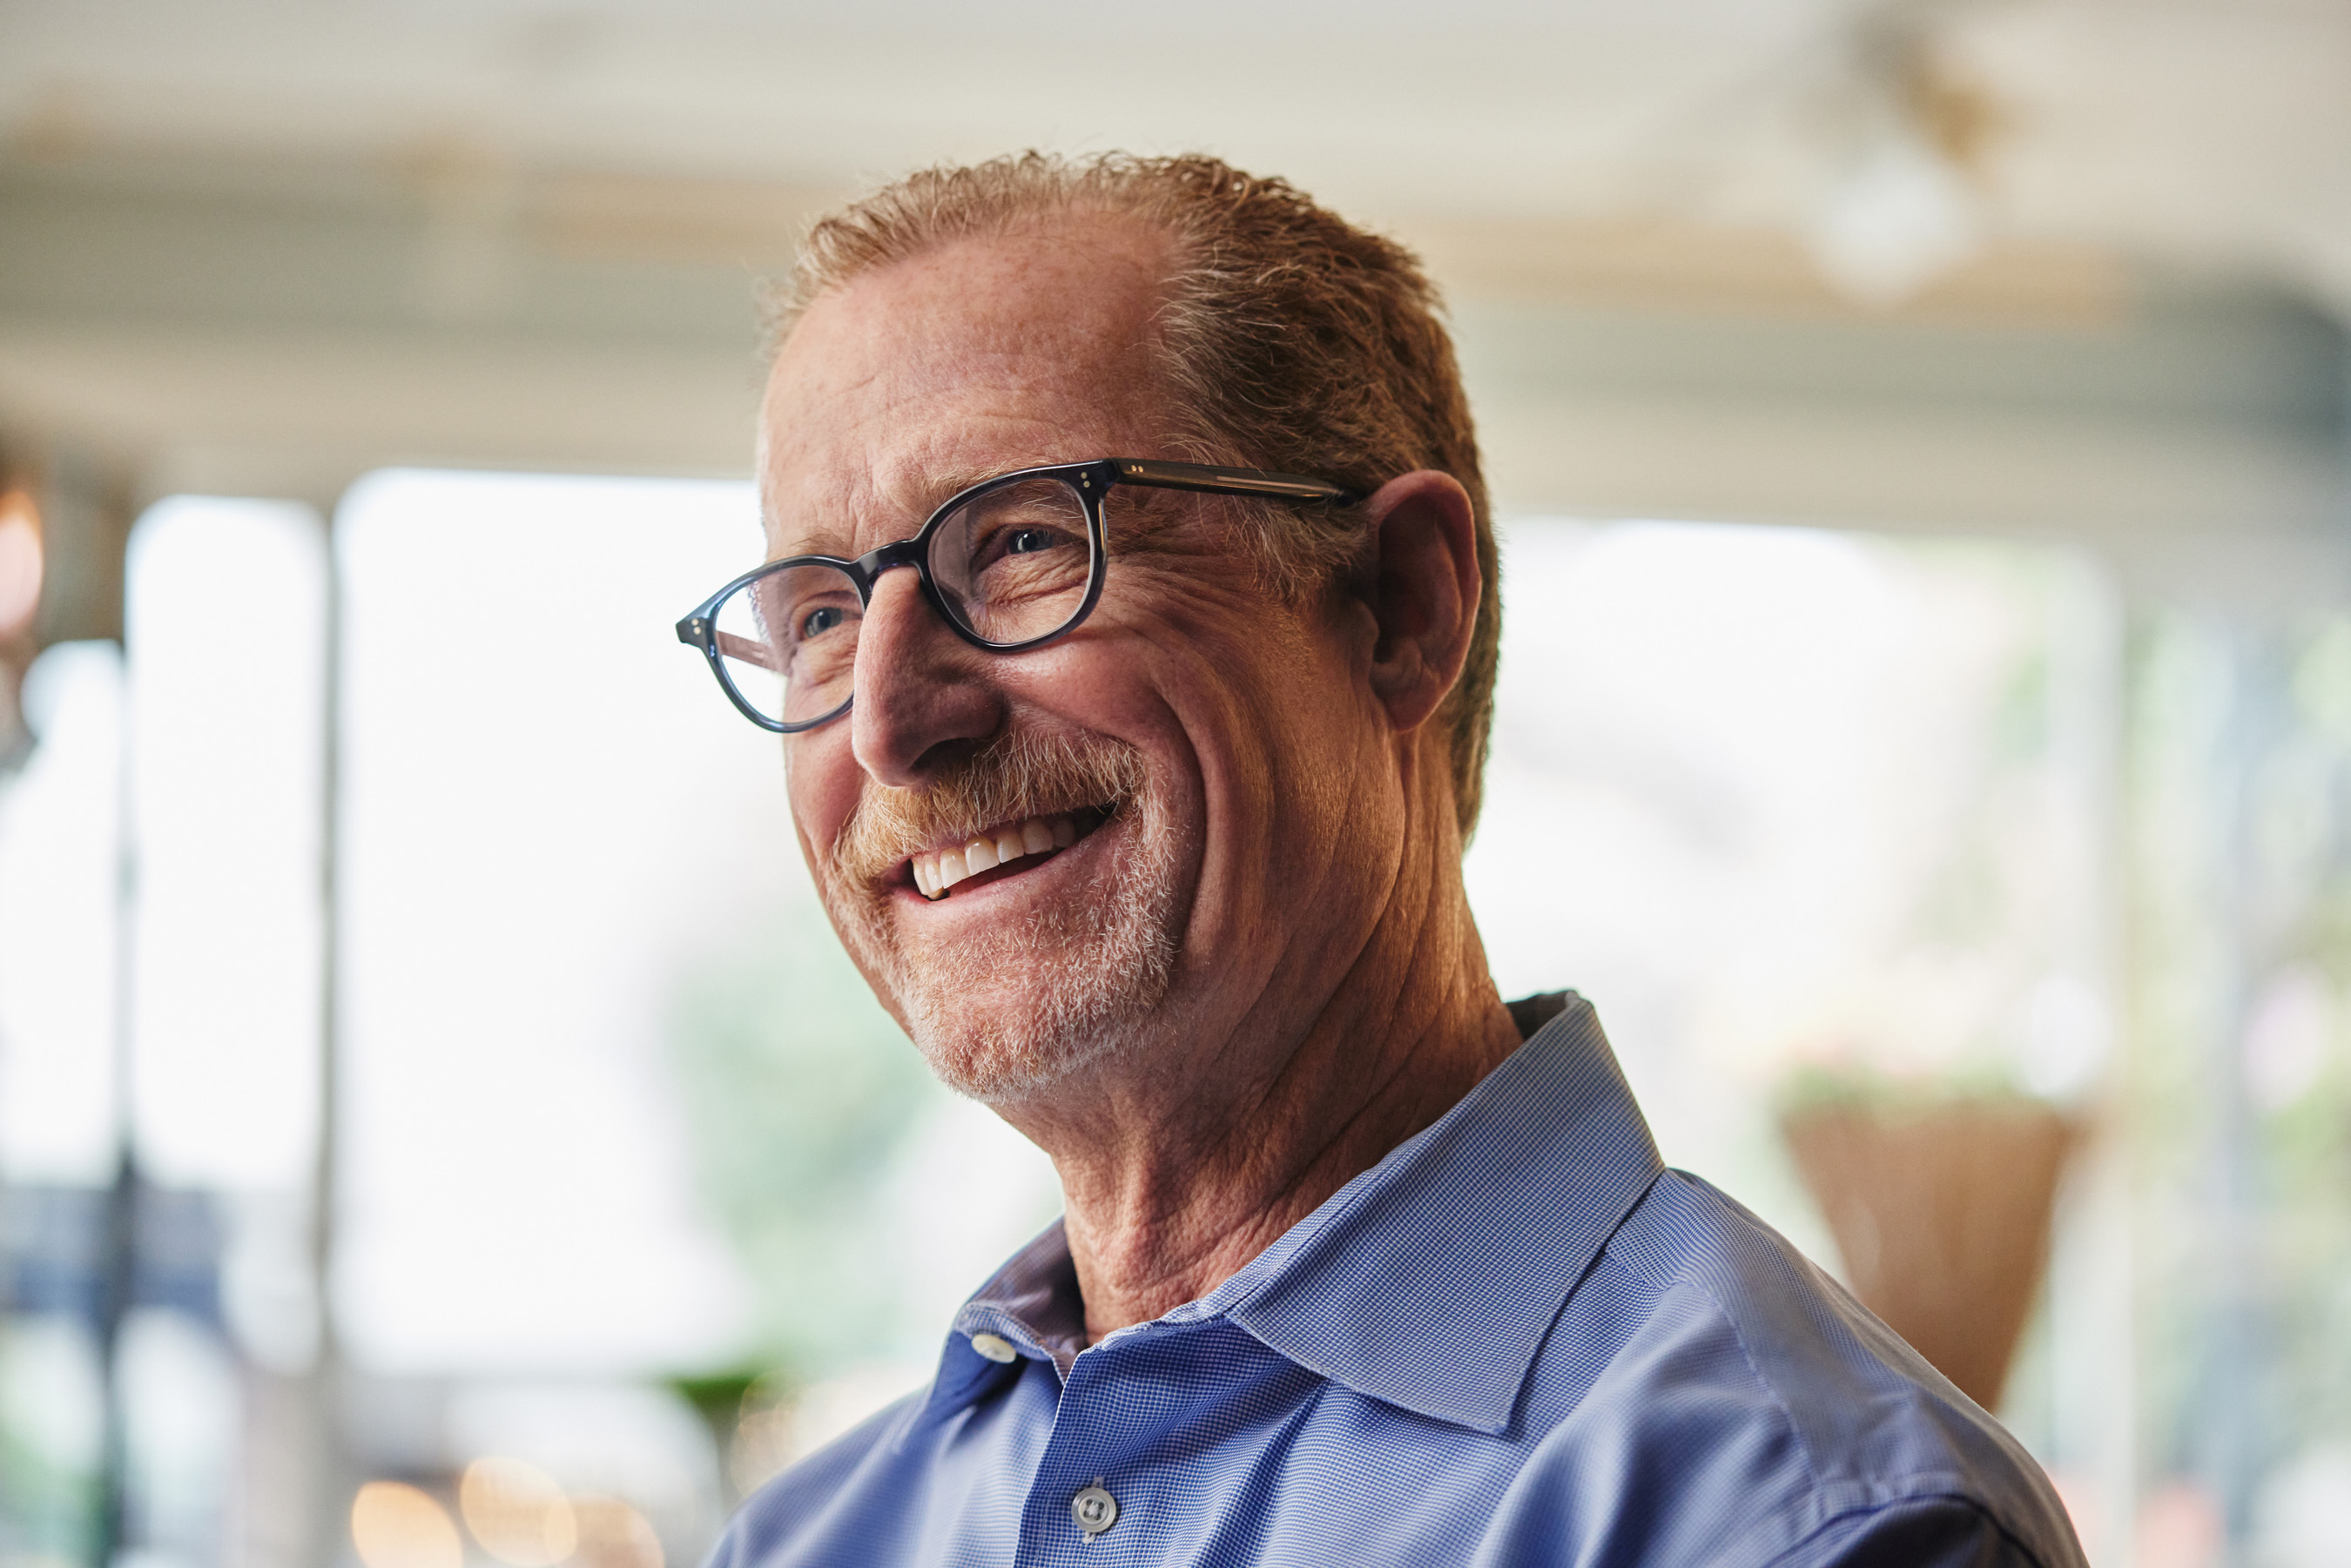 AOA Optometrist, Dr. Randy Griffin provides Caroline's ongoing eye health care